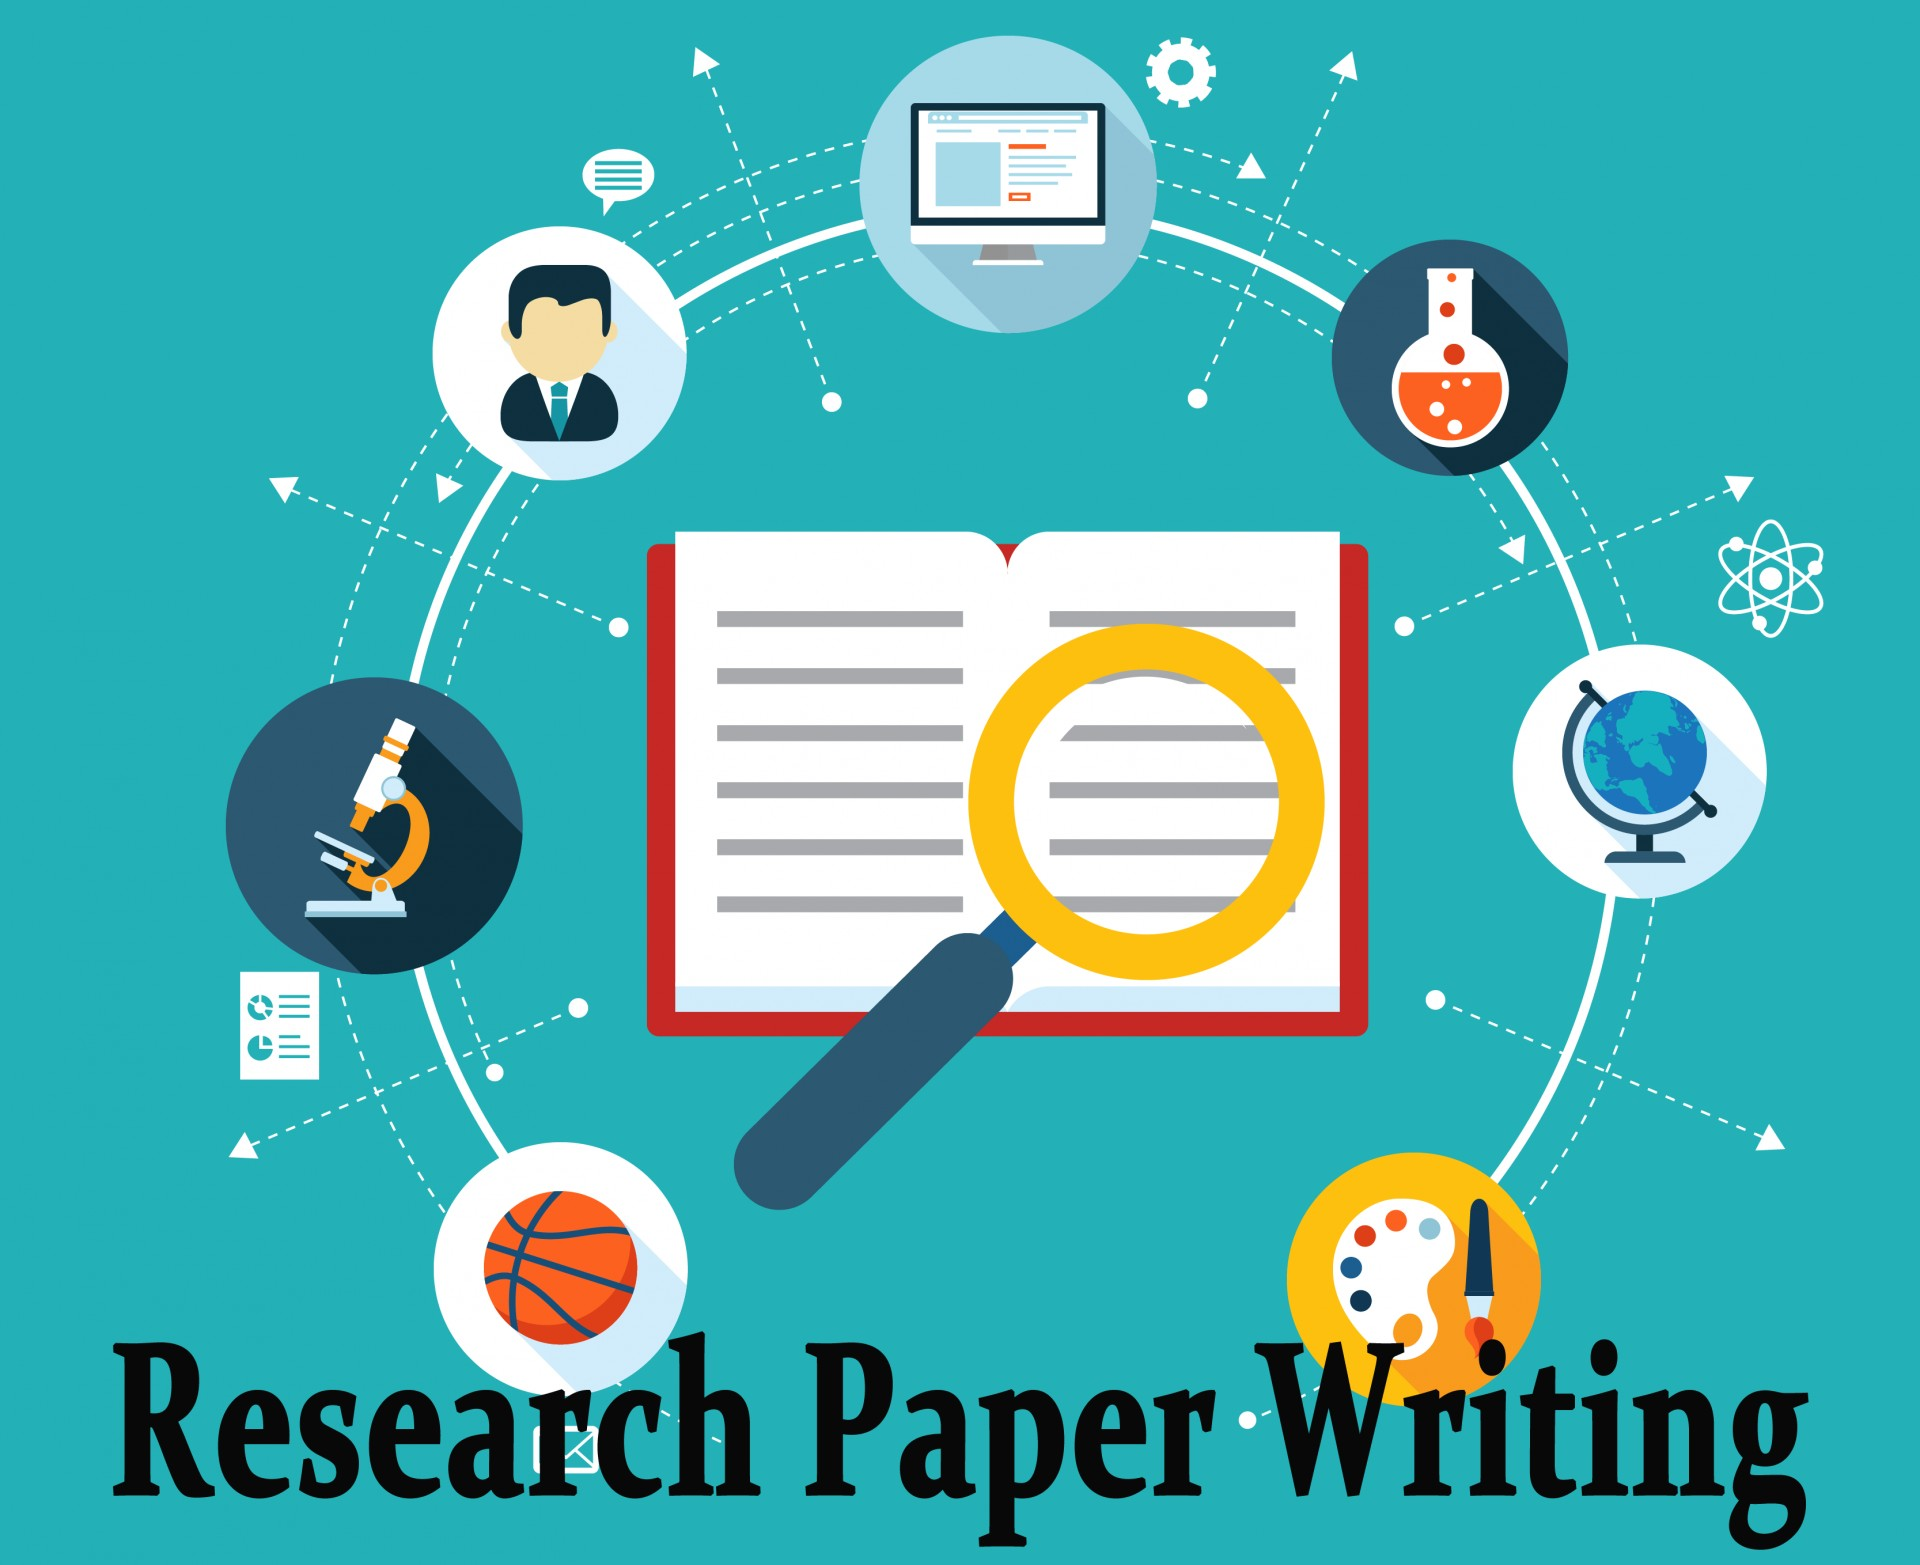 022 Writting Research Paper 503 Effective Writing Dreaded A Example Of Proposal Apa Format Outline Conclusion 1920